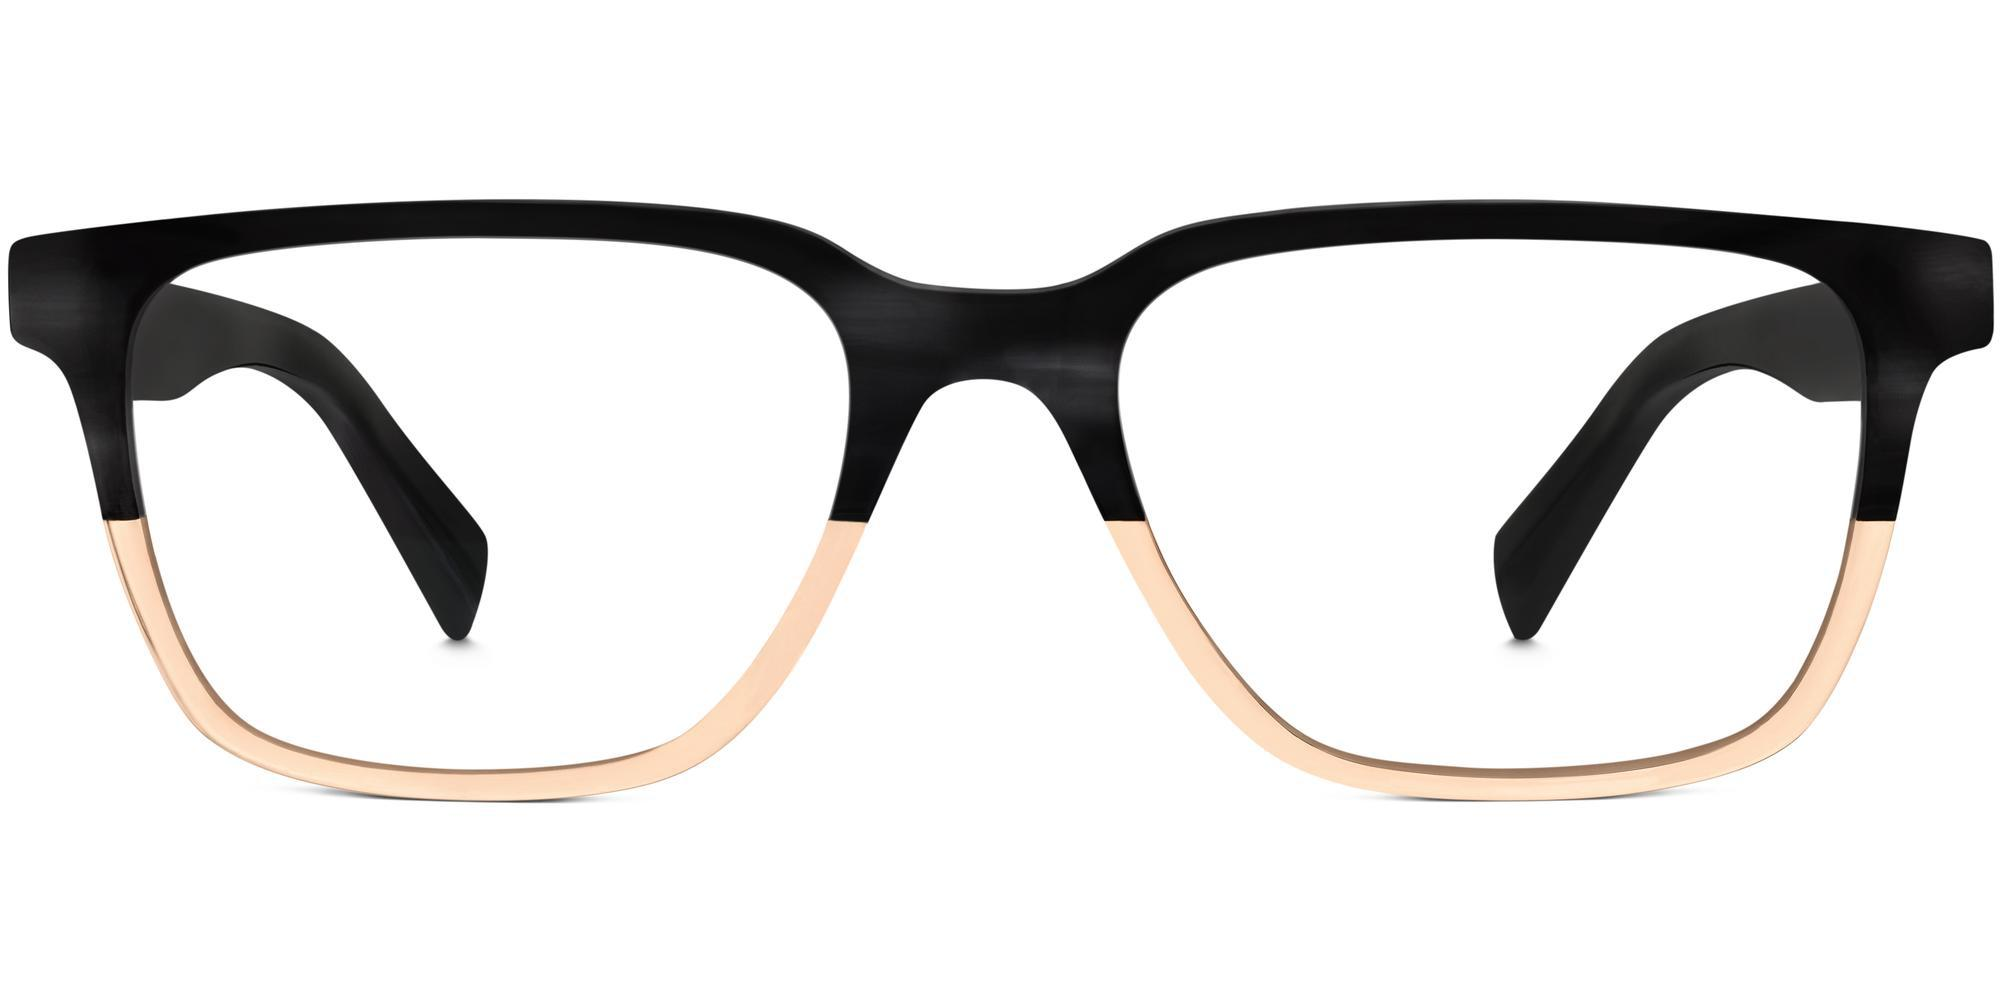 23f7be8ceec2 Lyst - Warby Parker Gilbert Eyeglasses in Black for Men